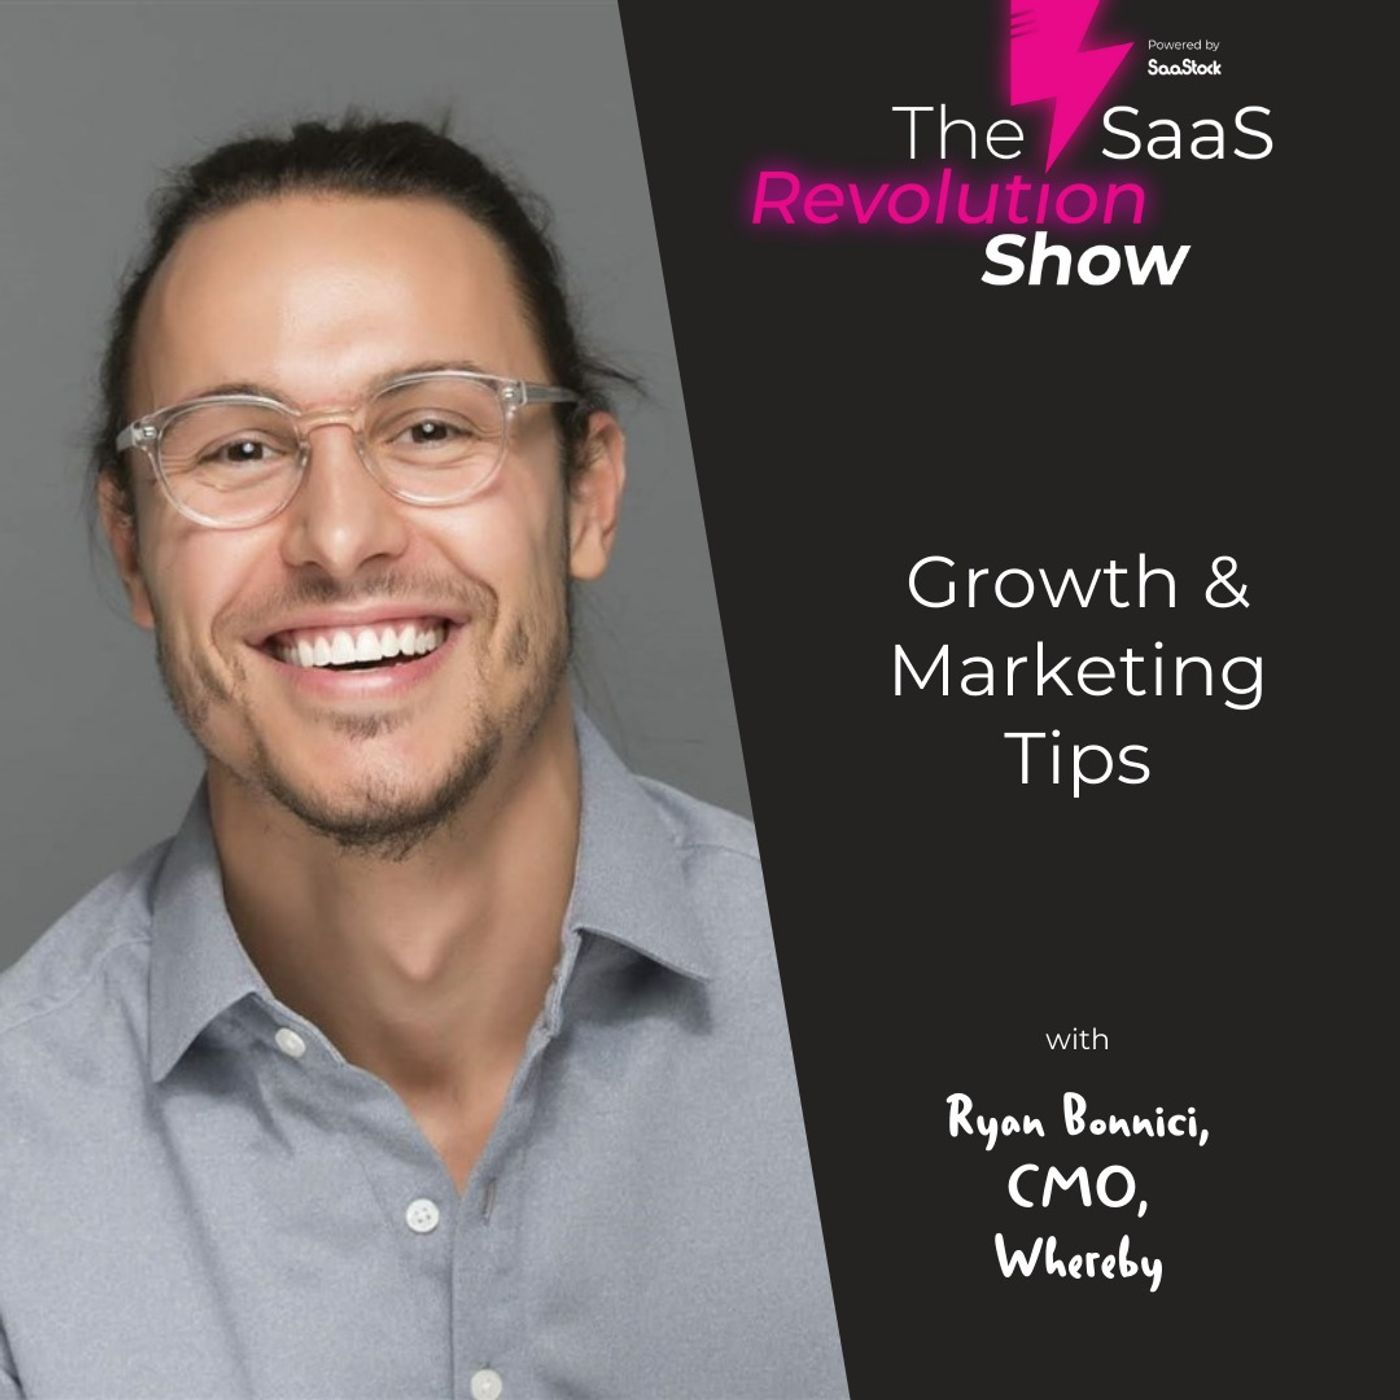 Growth and Marketing tips, with Ryan Bonnici, CMO of Whereby